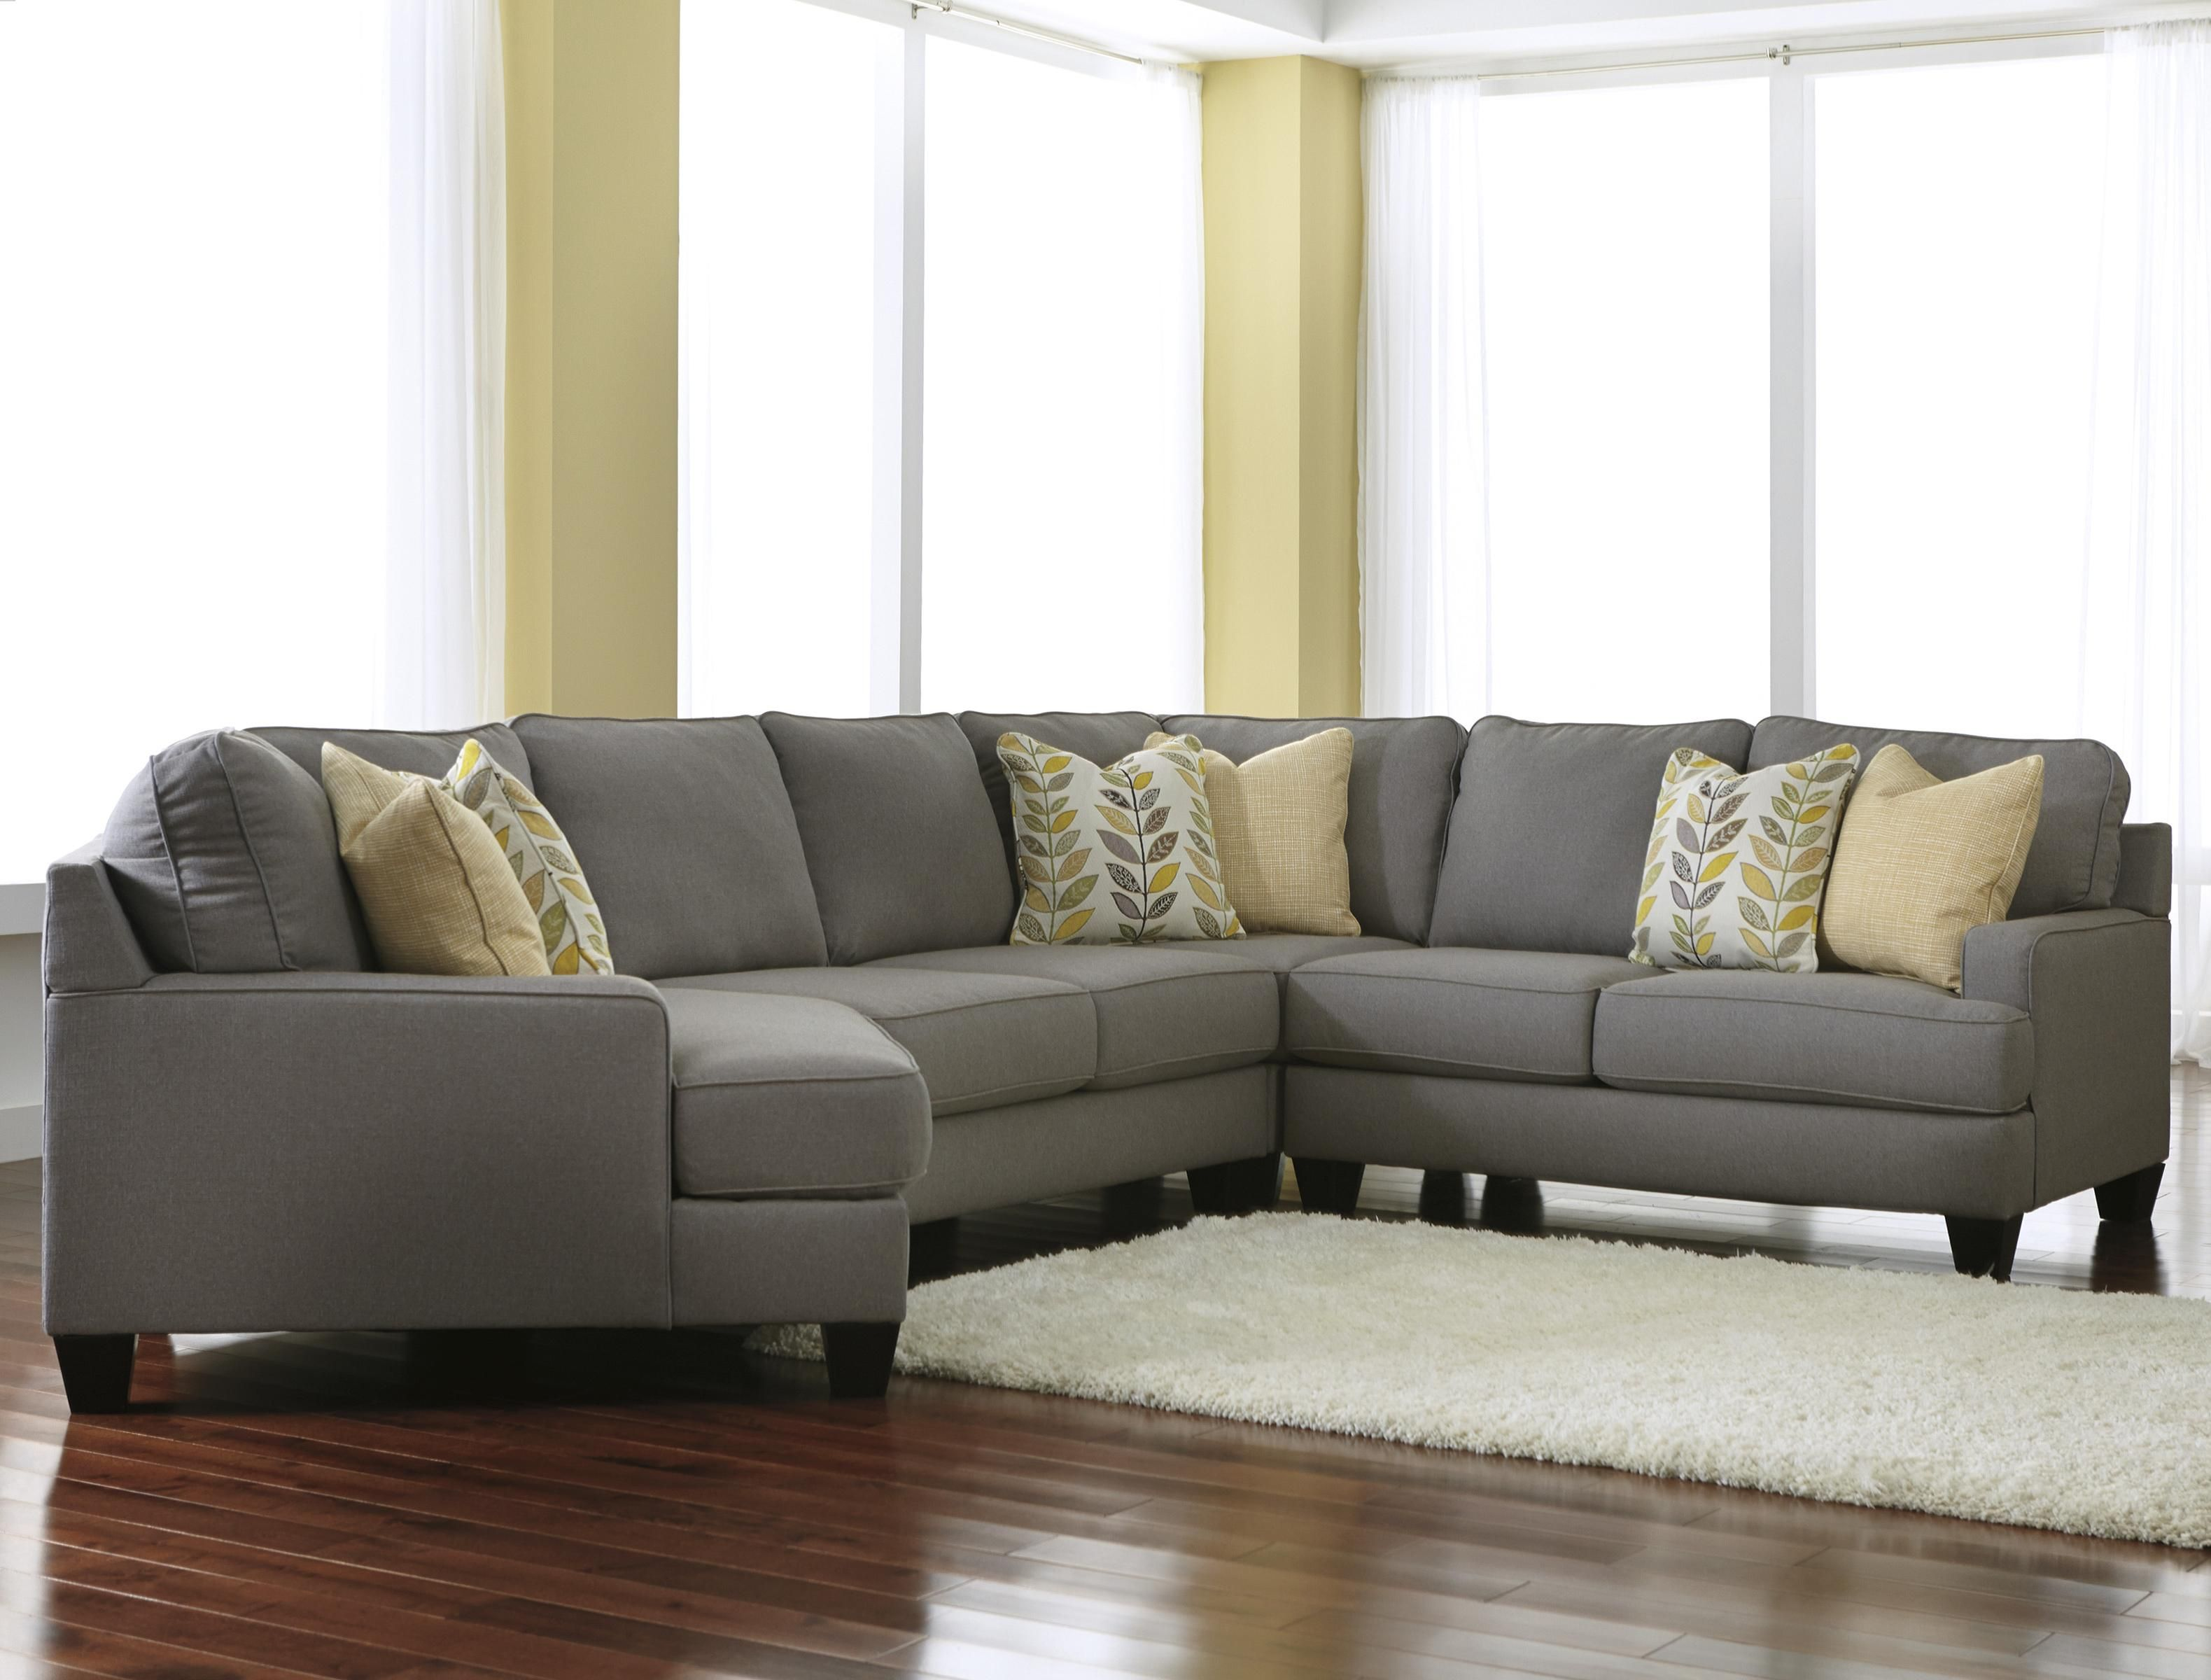 Chamberly Alloy Modern 4 Piece Sectional Sofa with Left Cuddler